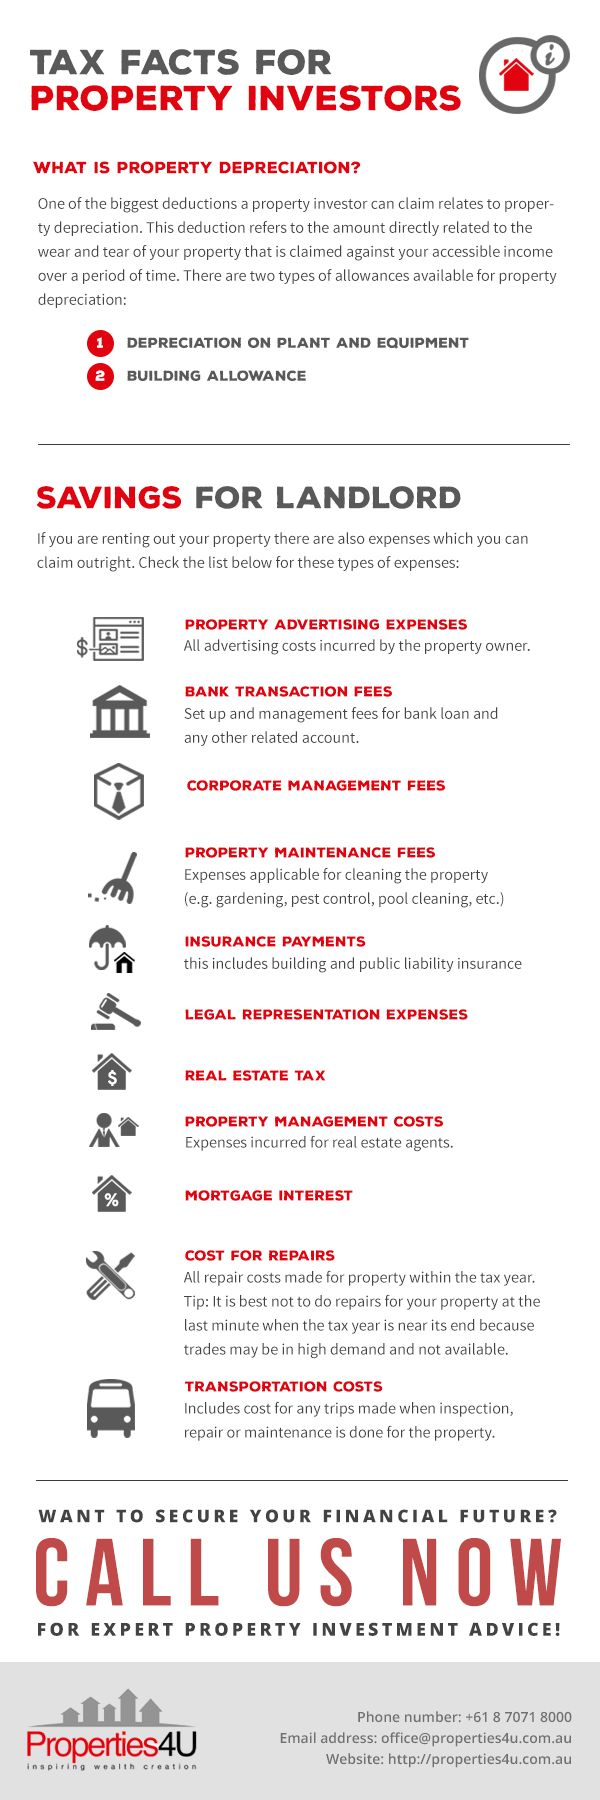 Want more information regarding property taxes and other property investment inquiries? Contact Properties4u today for Investment Properties Australia!